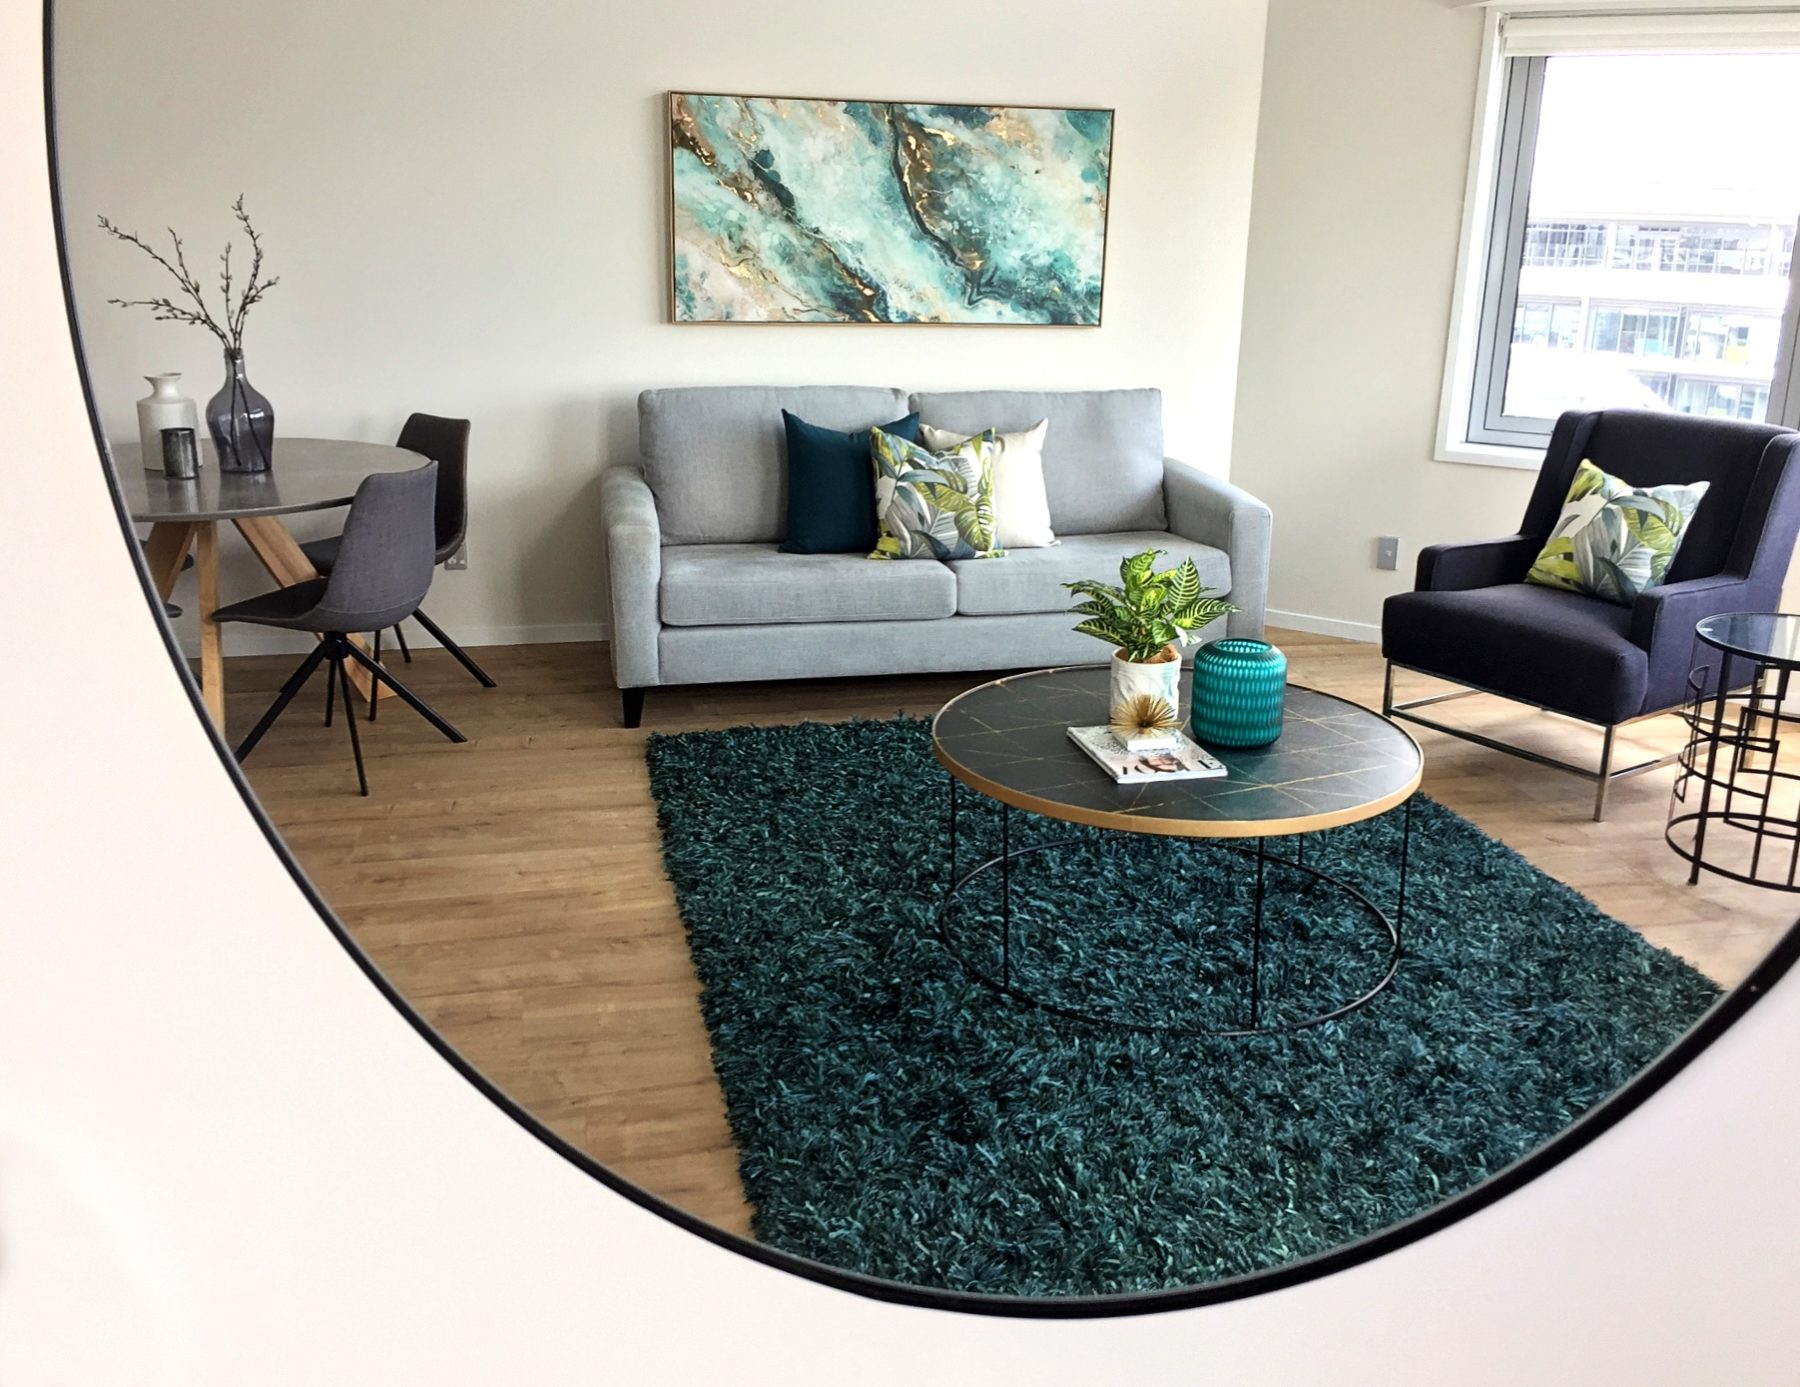 mirror reflection of living room with teal rug and wood floors